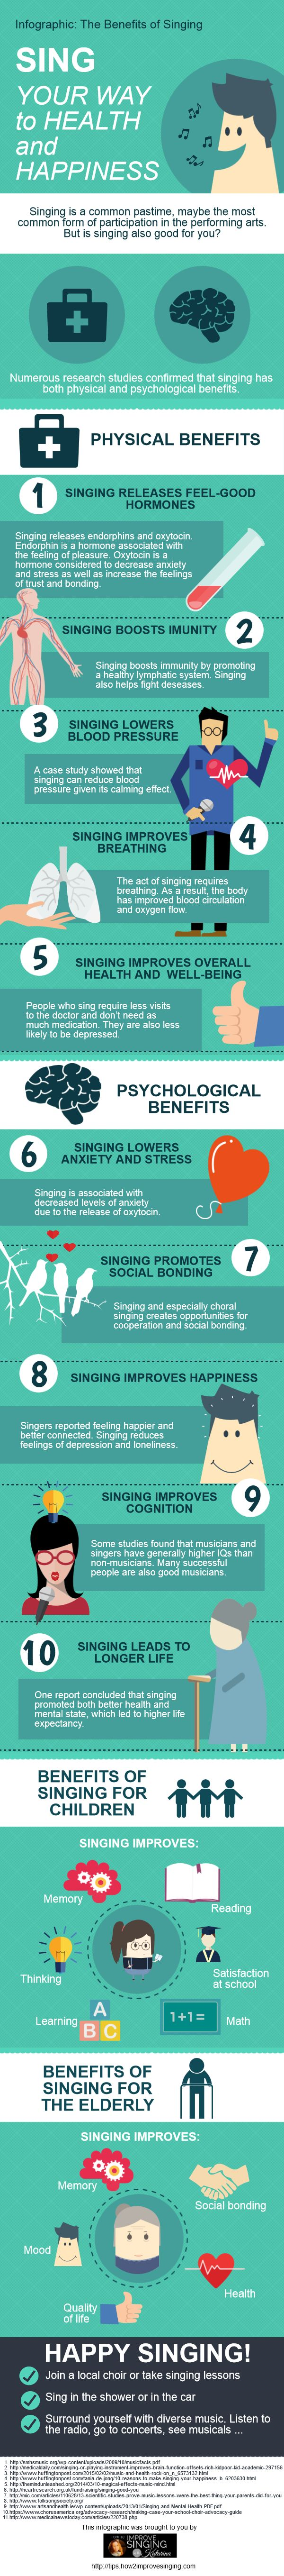 Click here to read more about the benefits of singing: http://tips.how2improvesinging.com/benefits-of-singing/